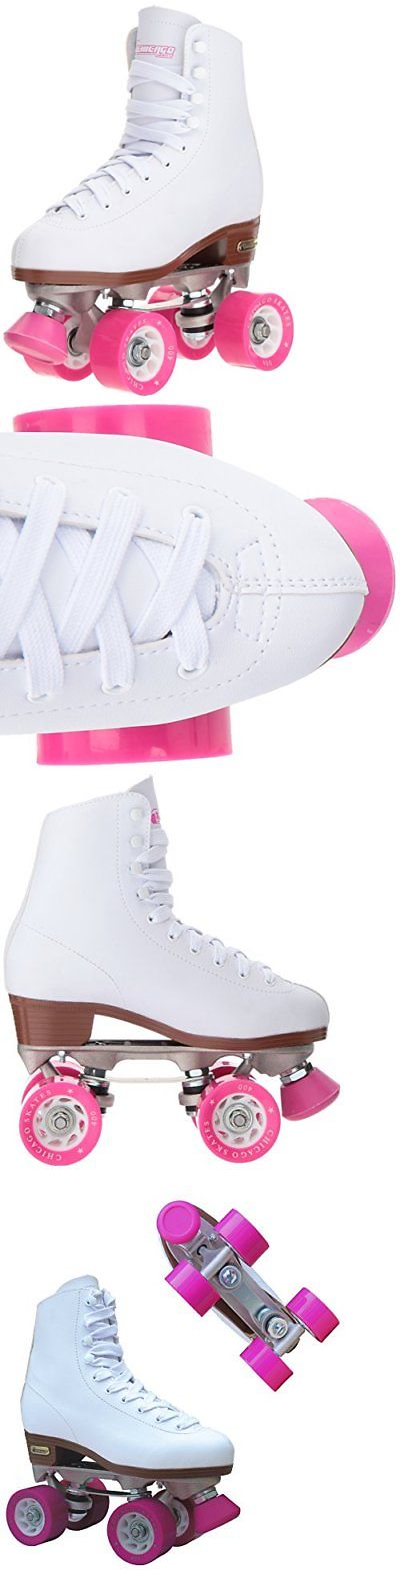 Women 16261: Size 6 Indoor Outdoor High Top Adjustable Rink Quad Roller Skate Pair For Women -> BUY IT NOW ONLY: $58.27 on eBay!